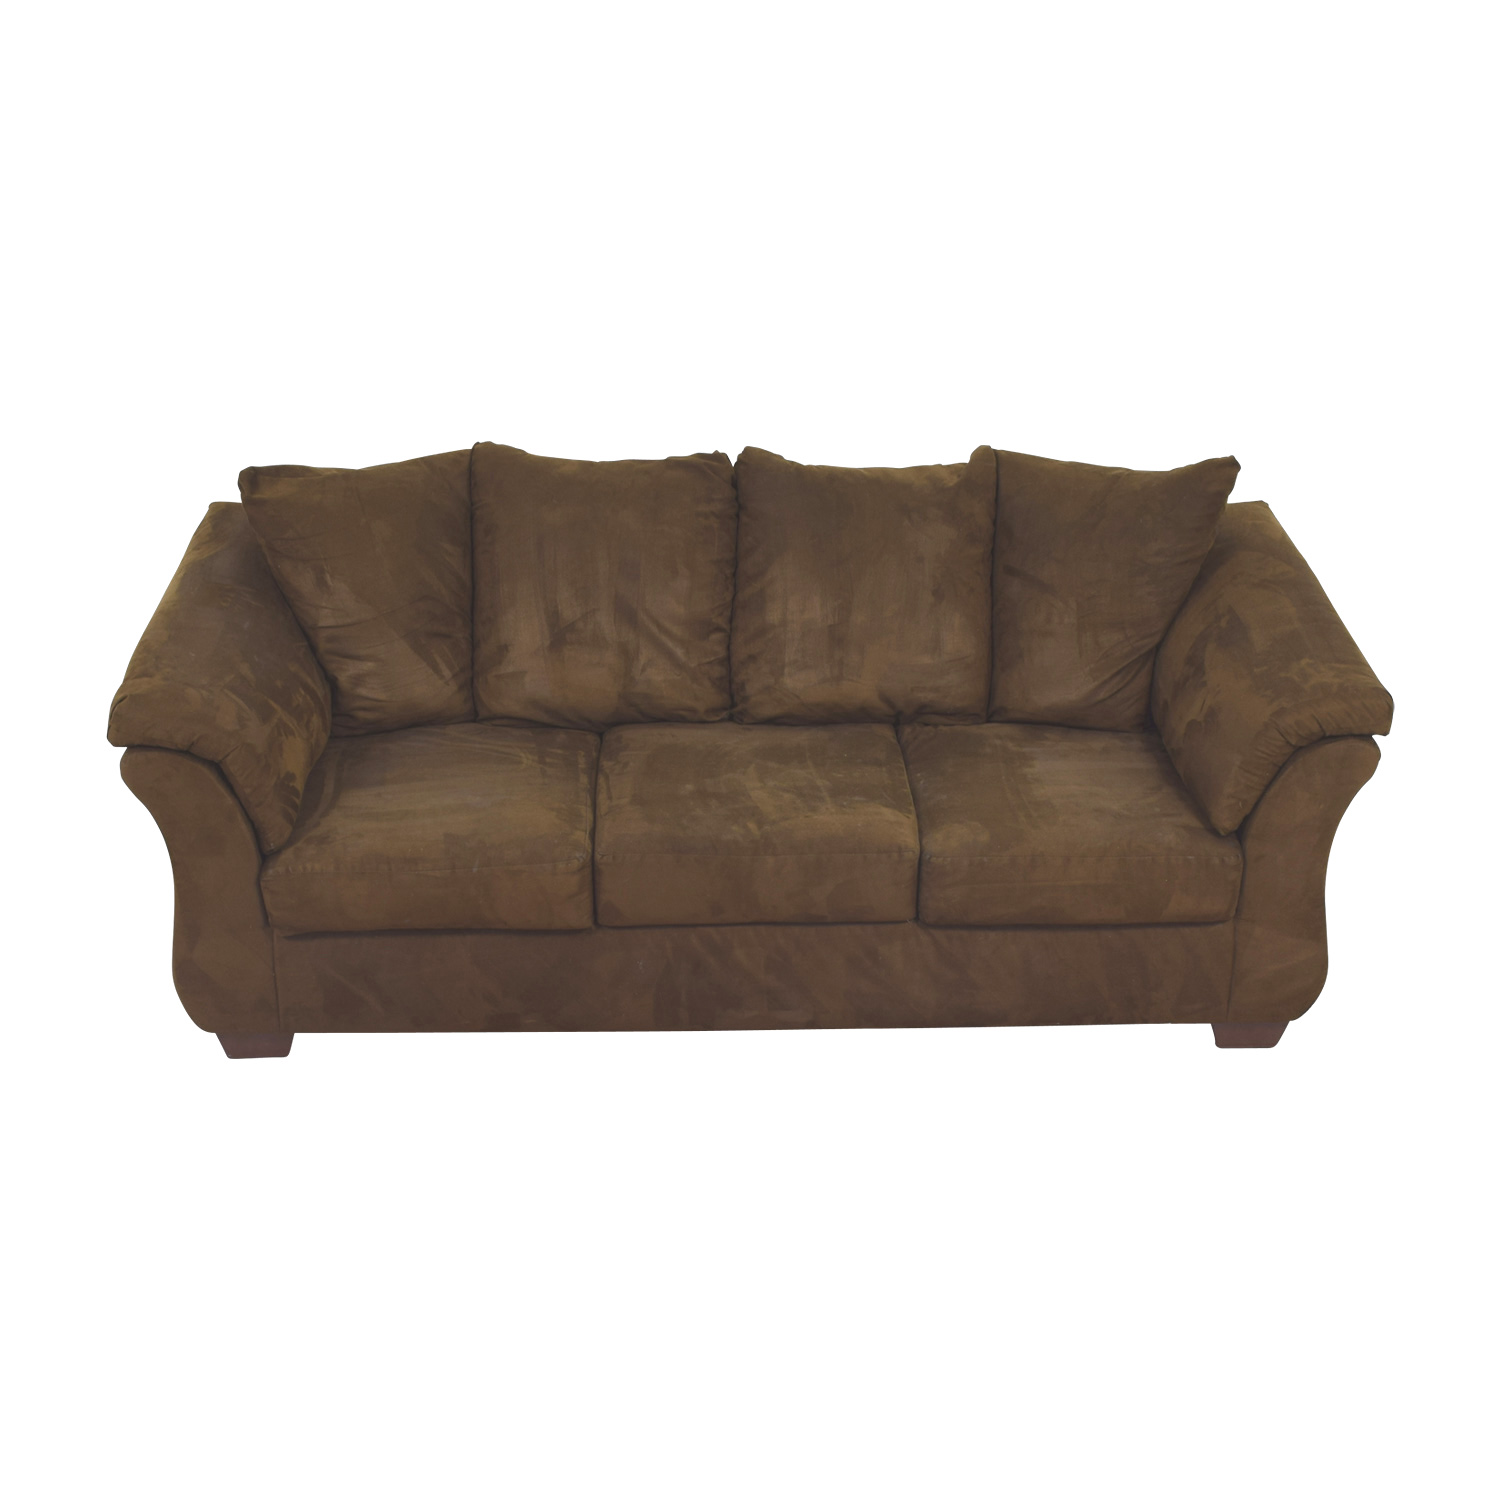 buy Ashley Furniture Three-Cushion Brown Couch Ashley Furniture